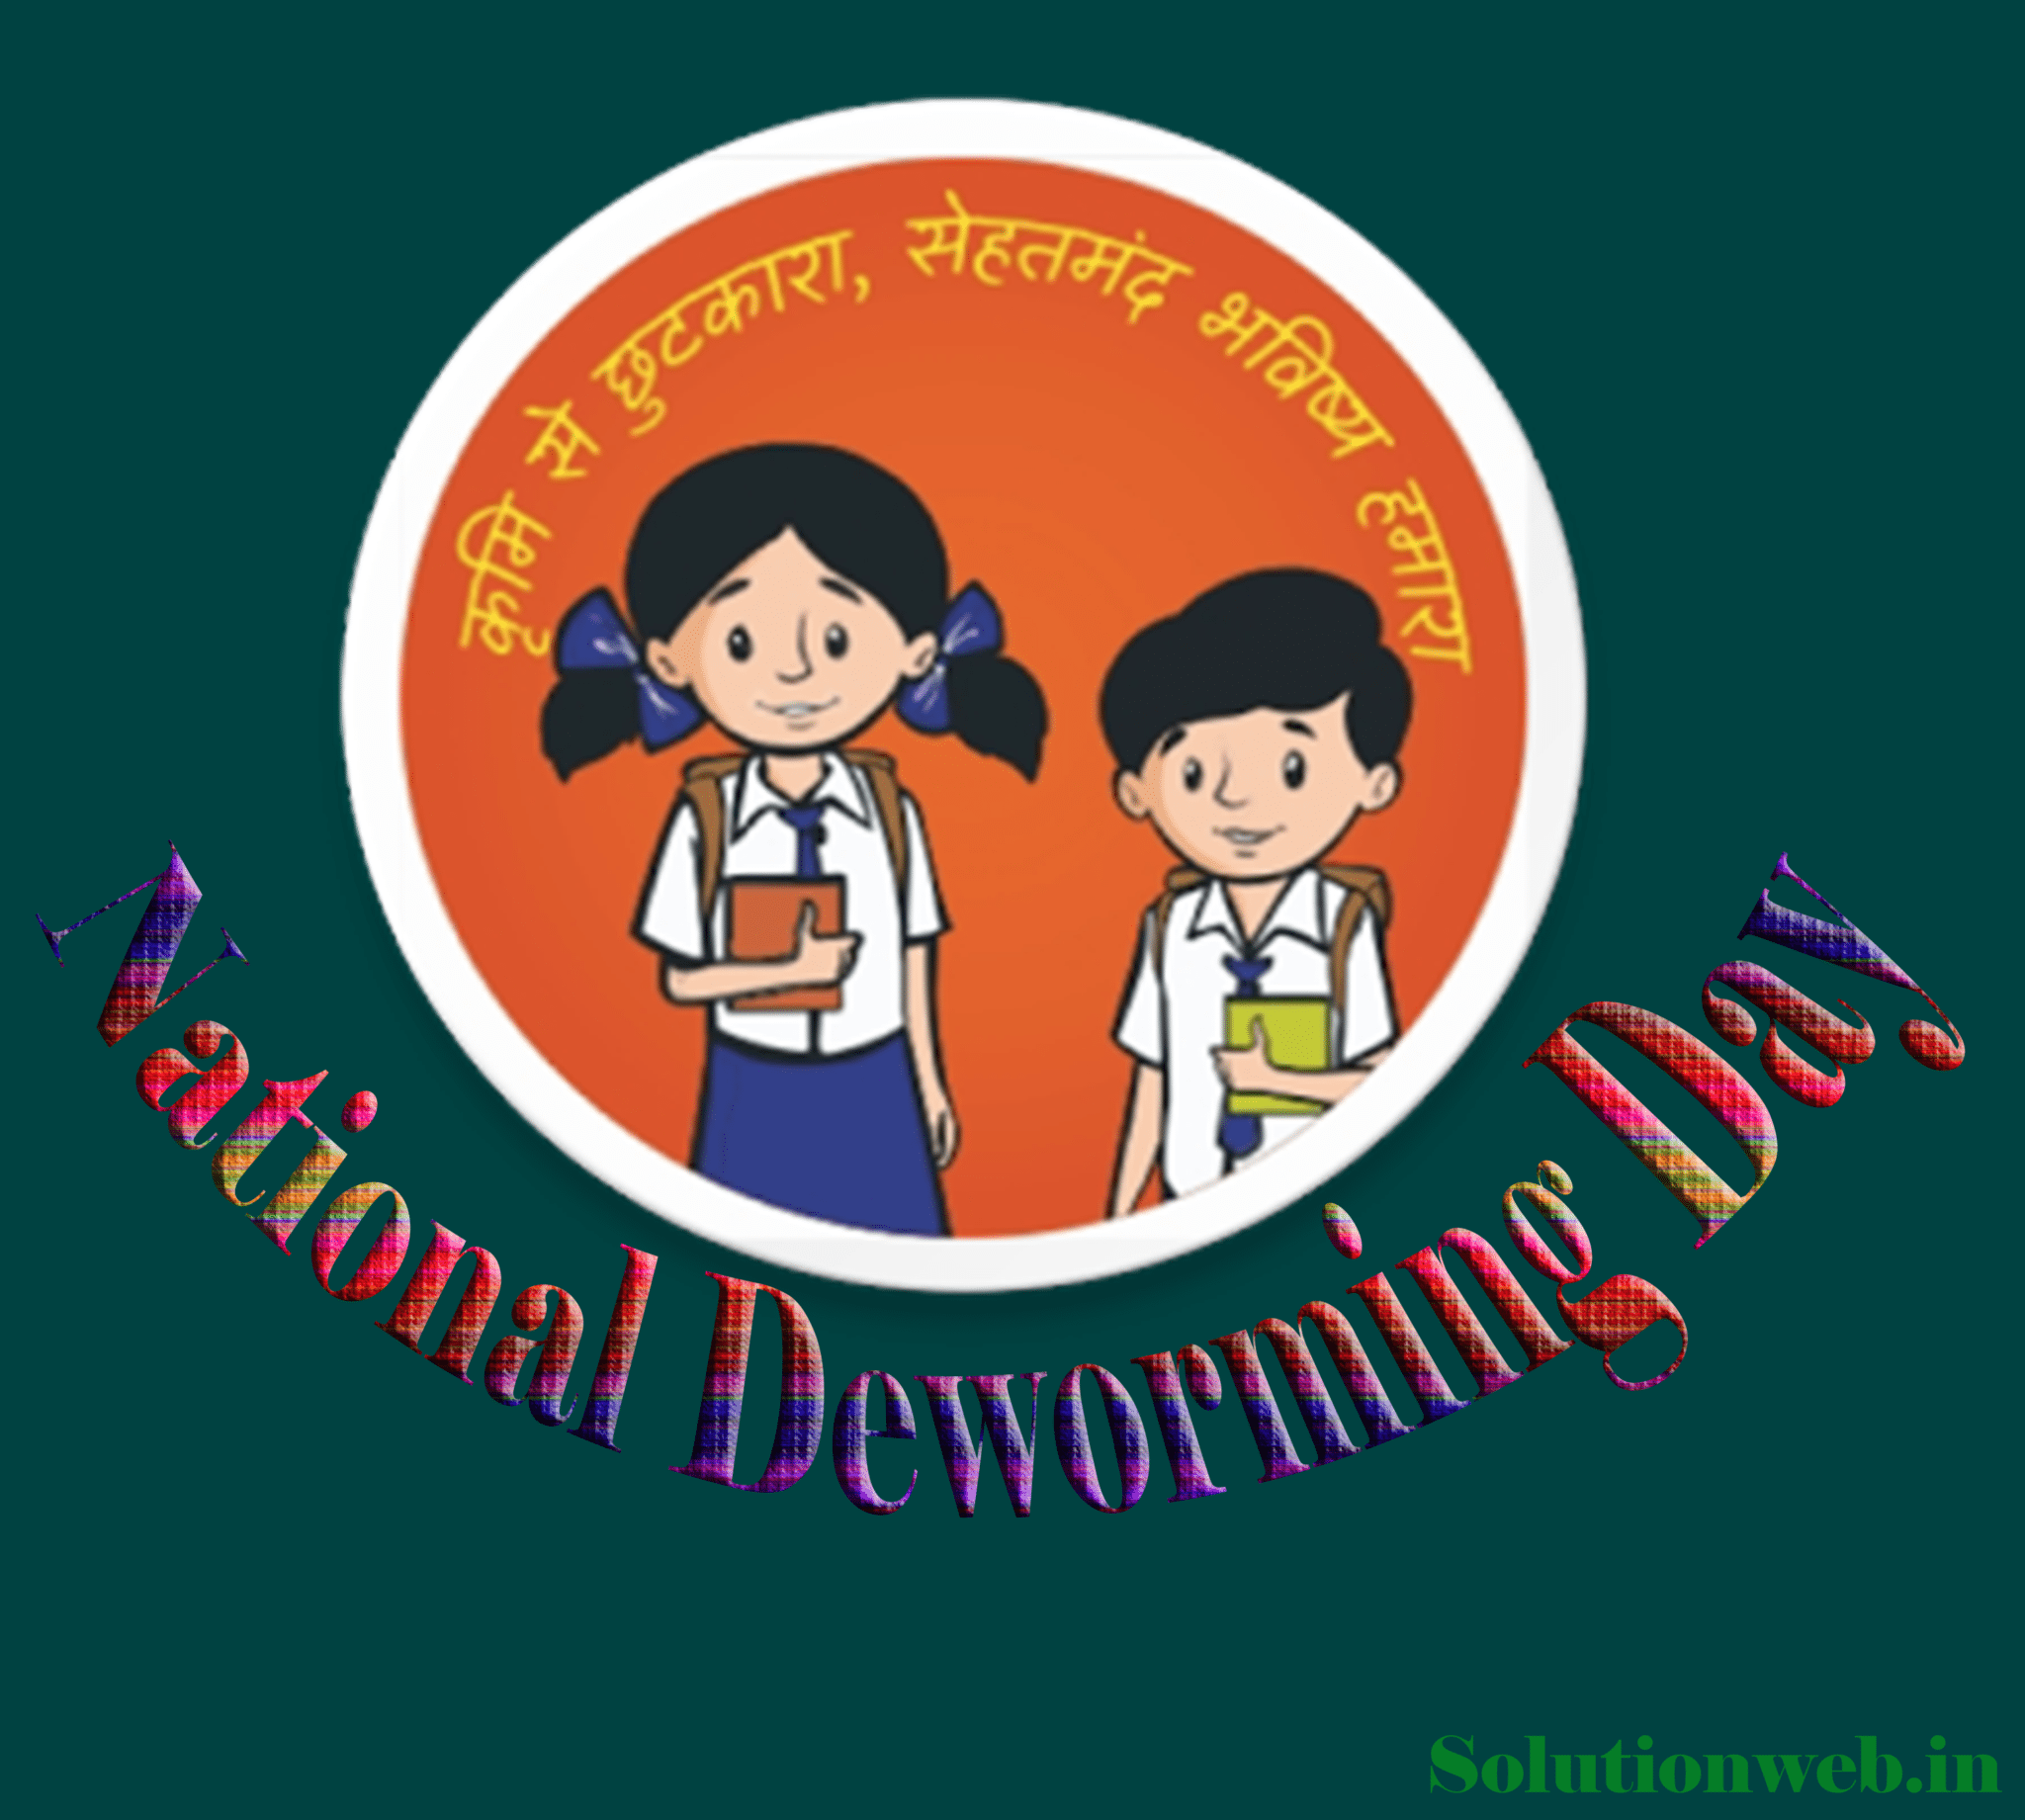 National Deworming Day 2018 10th Of February Theme